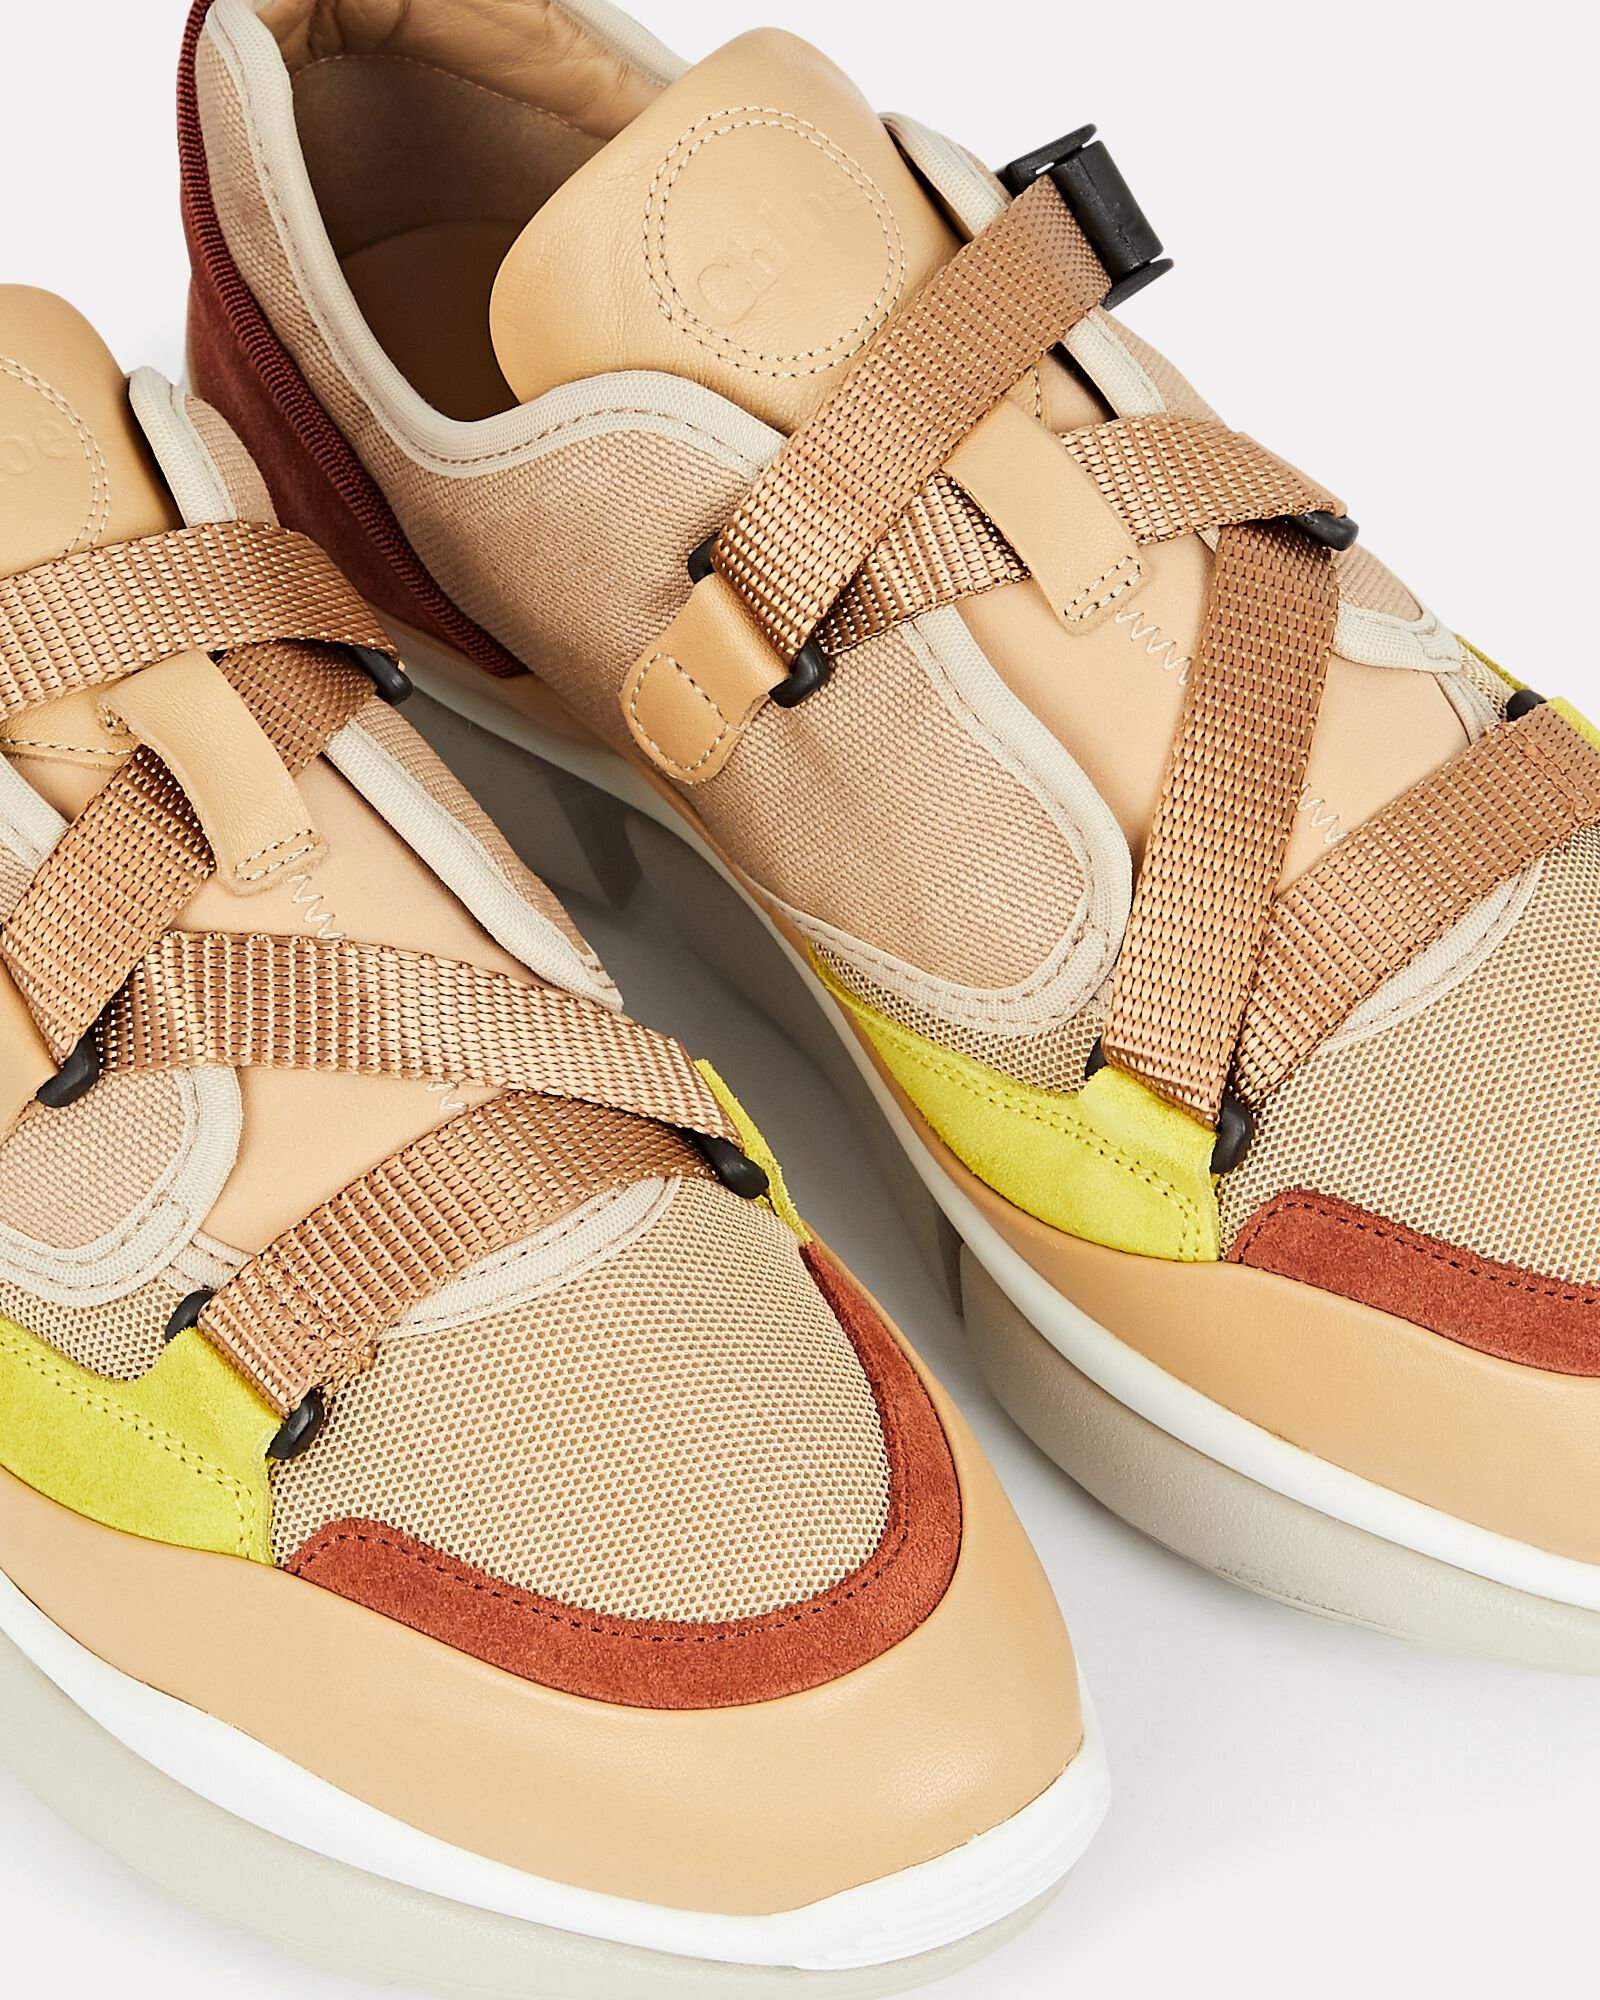 Sonnie Leather Low-Top Sneakers, BLUSH, hi-res